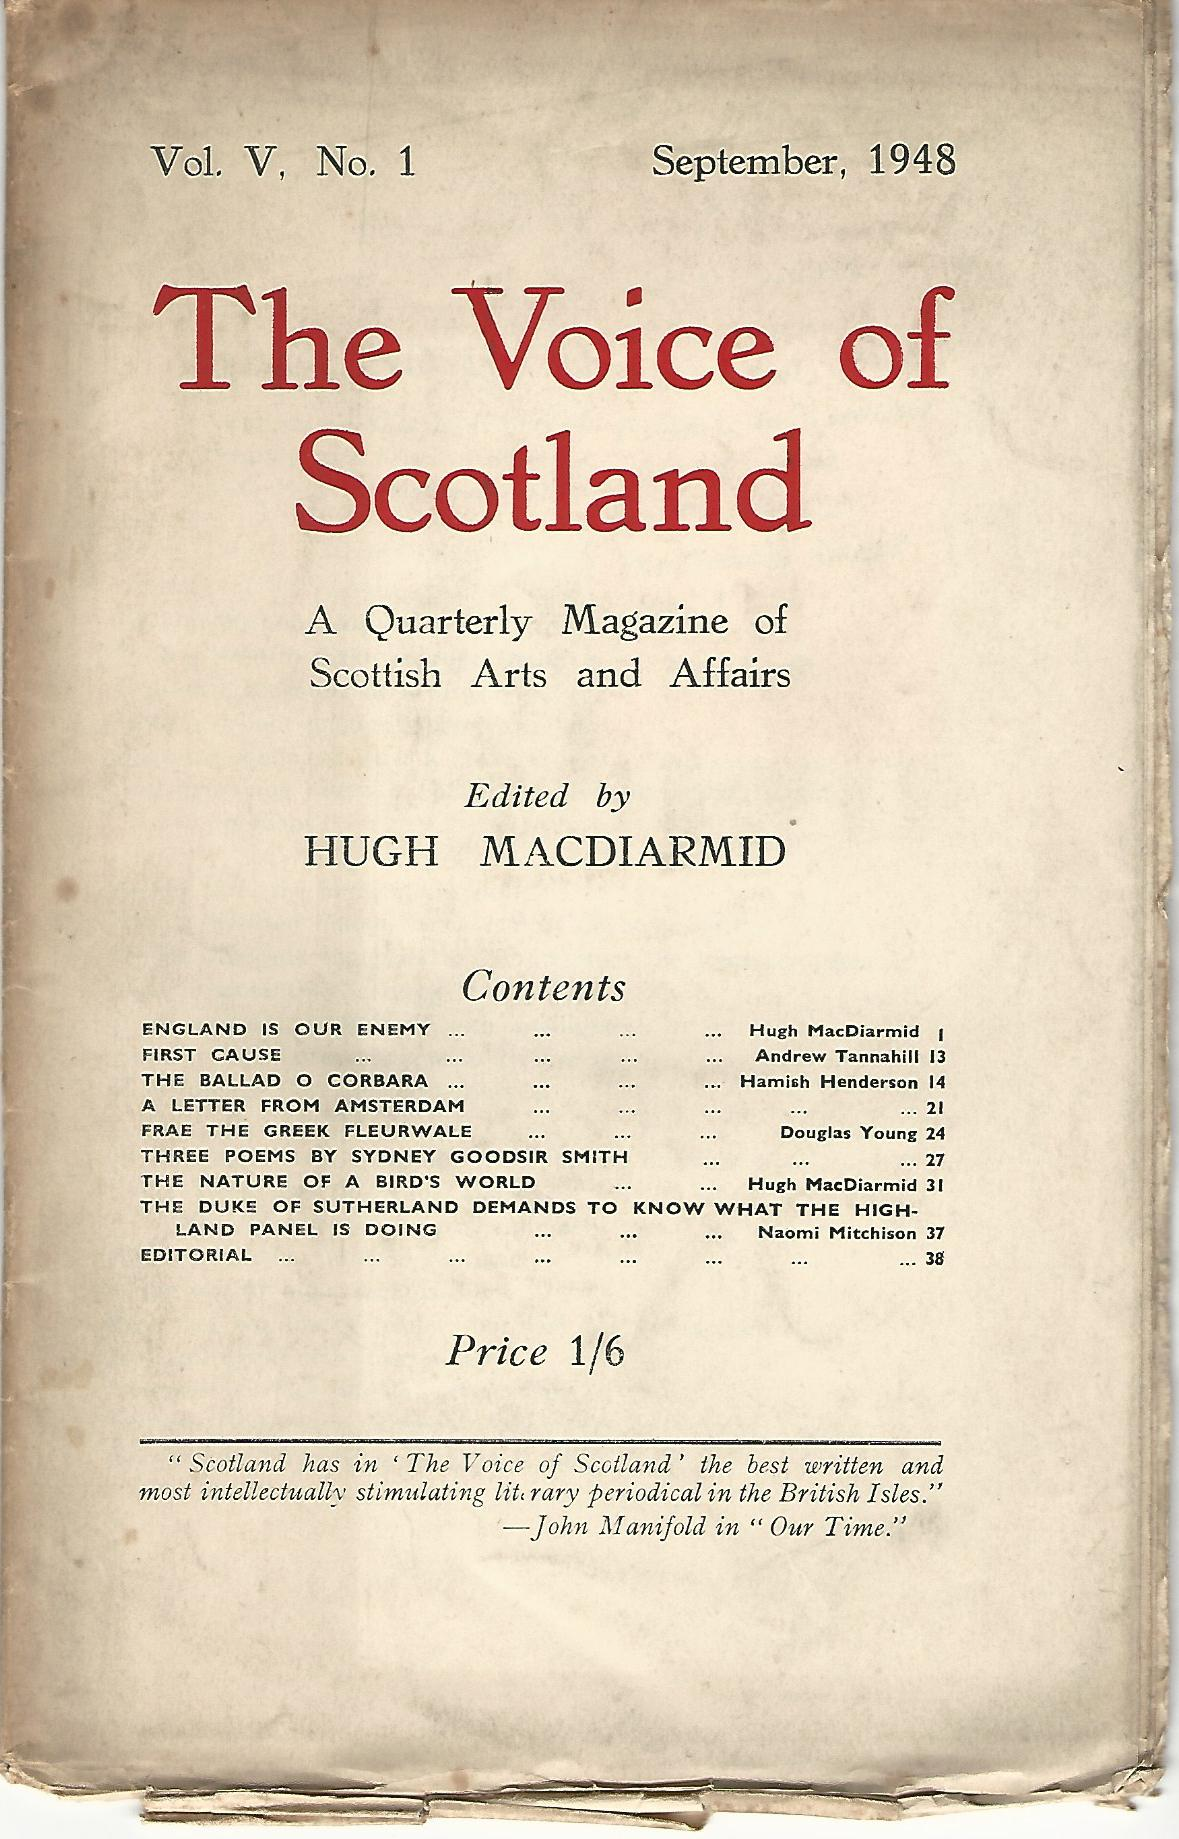 Image for The Voice of Scotland: A Quarterly Magazine of Scottish Arts and Affairs. Vol. V. No. 1. September 1948